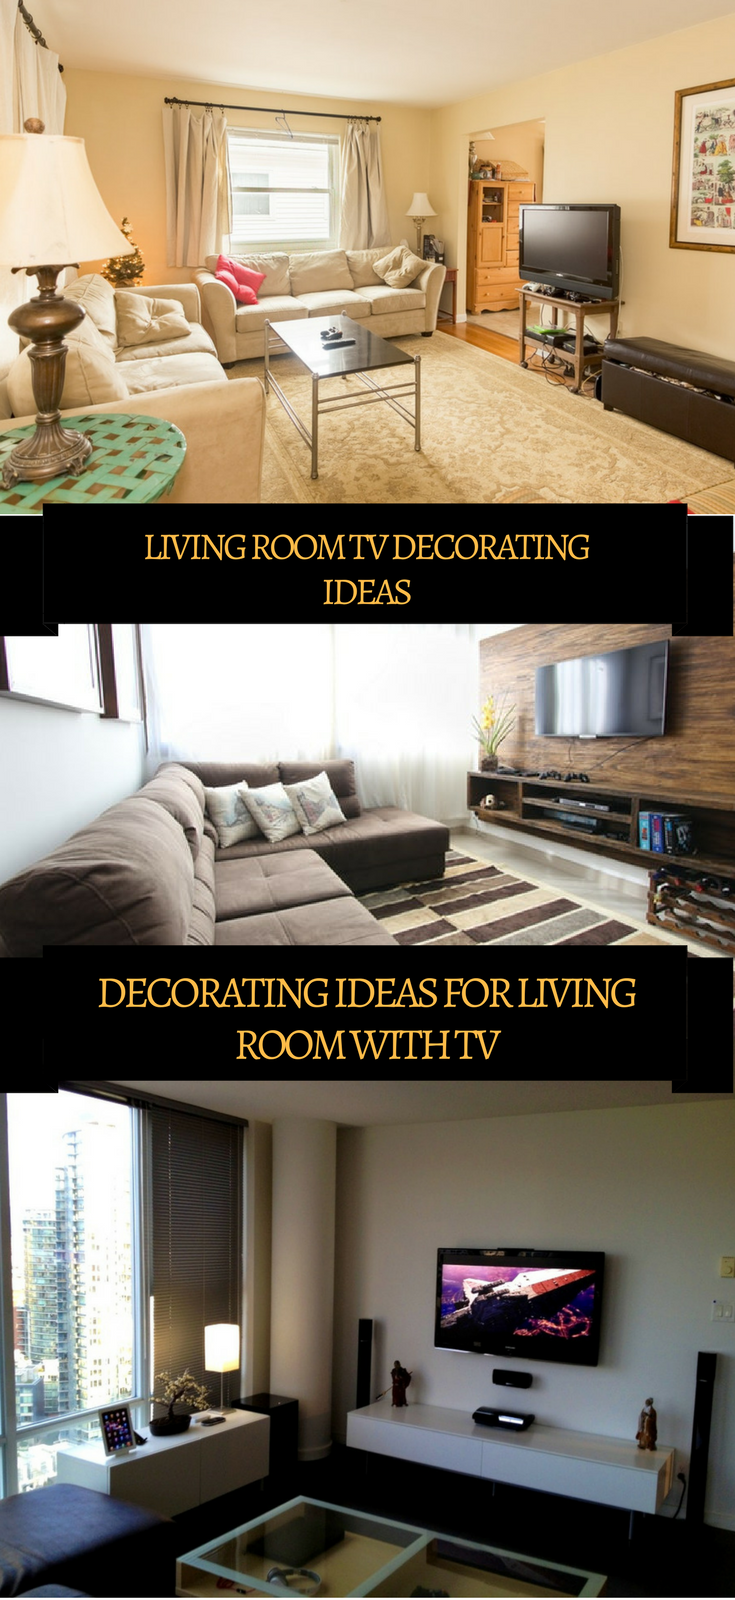 LIVING ROOM TV DECORATING IDEAS (DECORATING IDEAS FOR ...